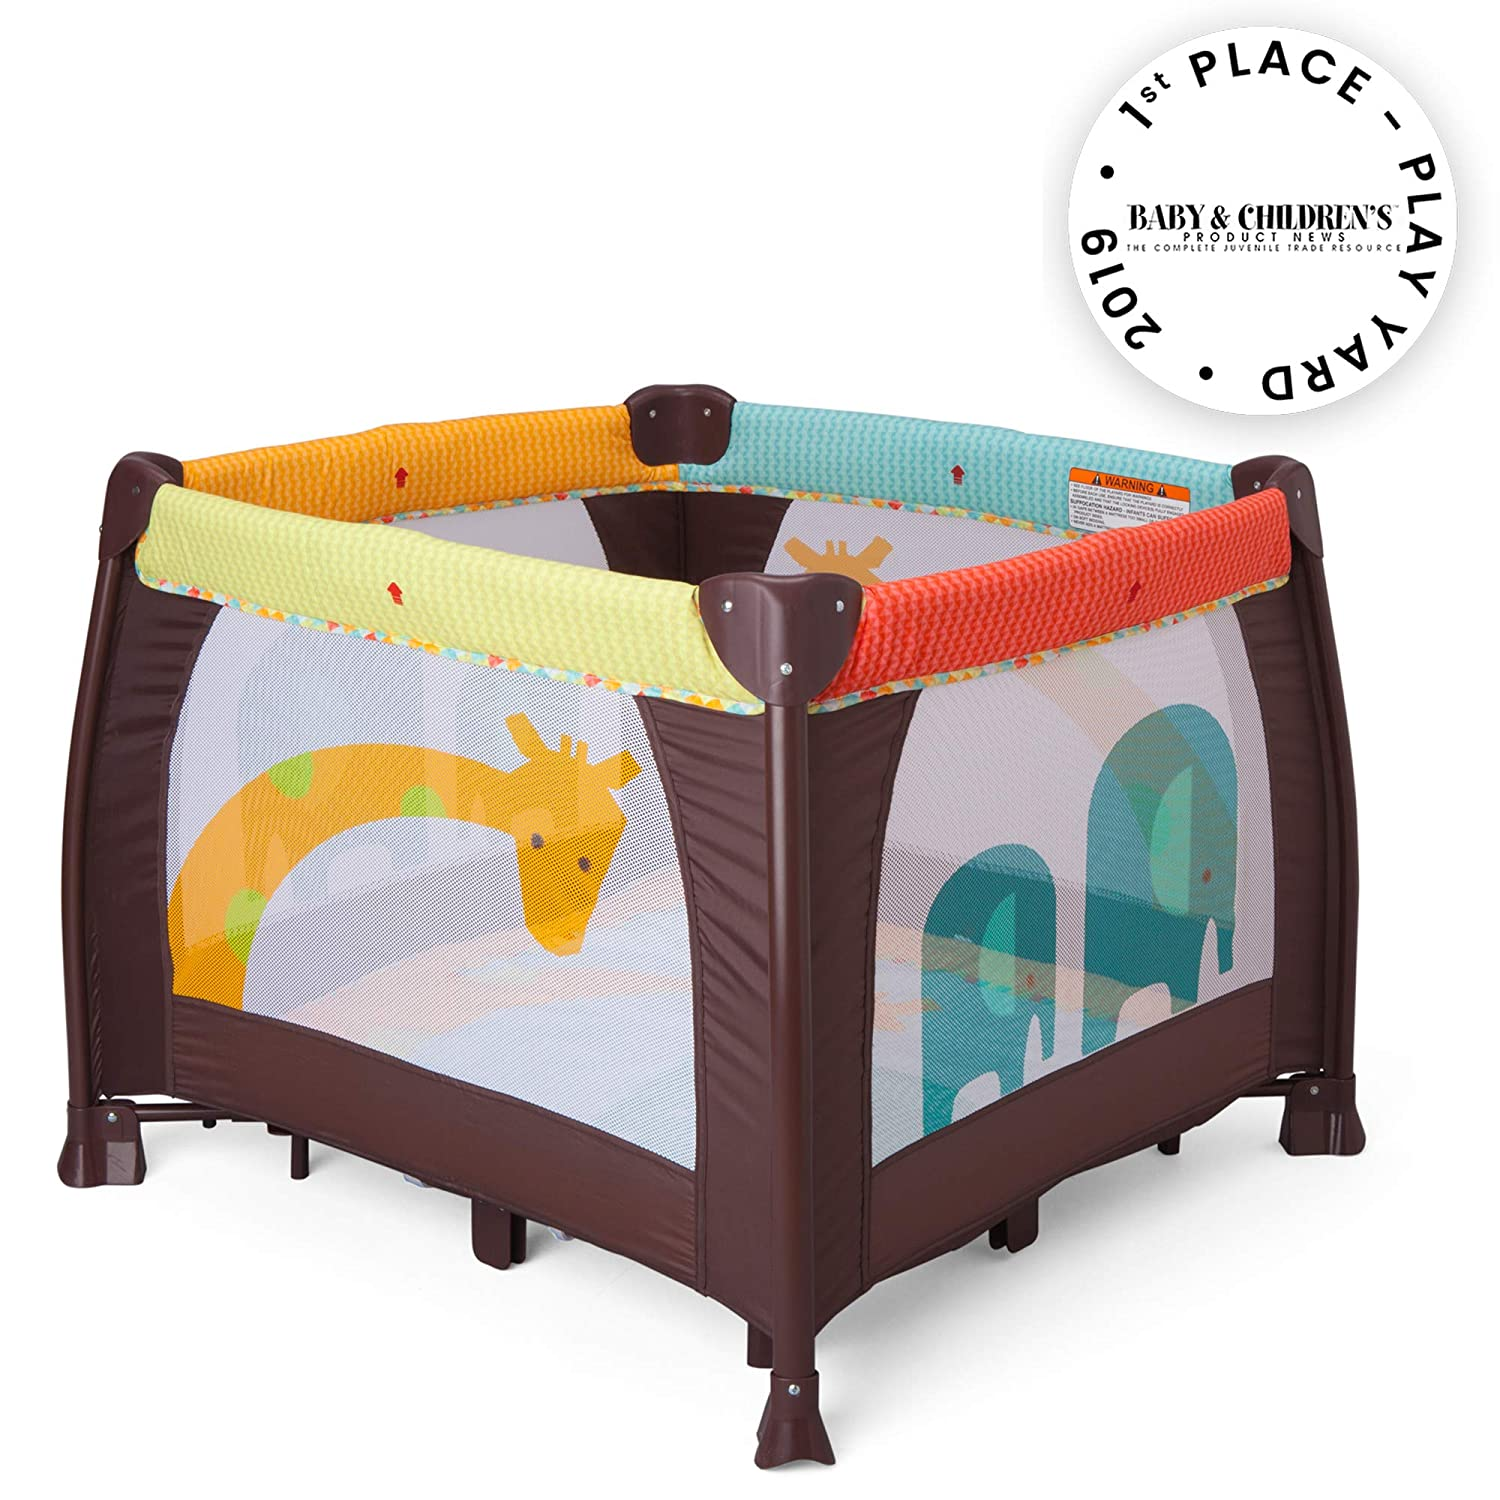 Delta Children 36 x 36 Playard, Novel Ideas